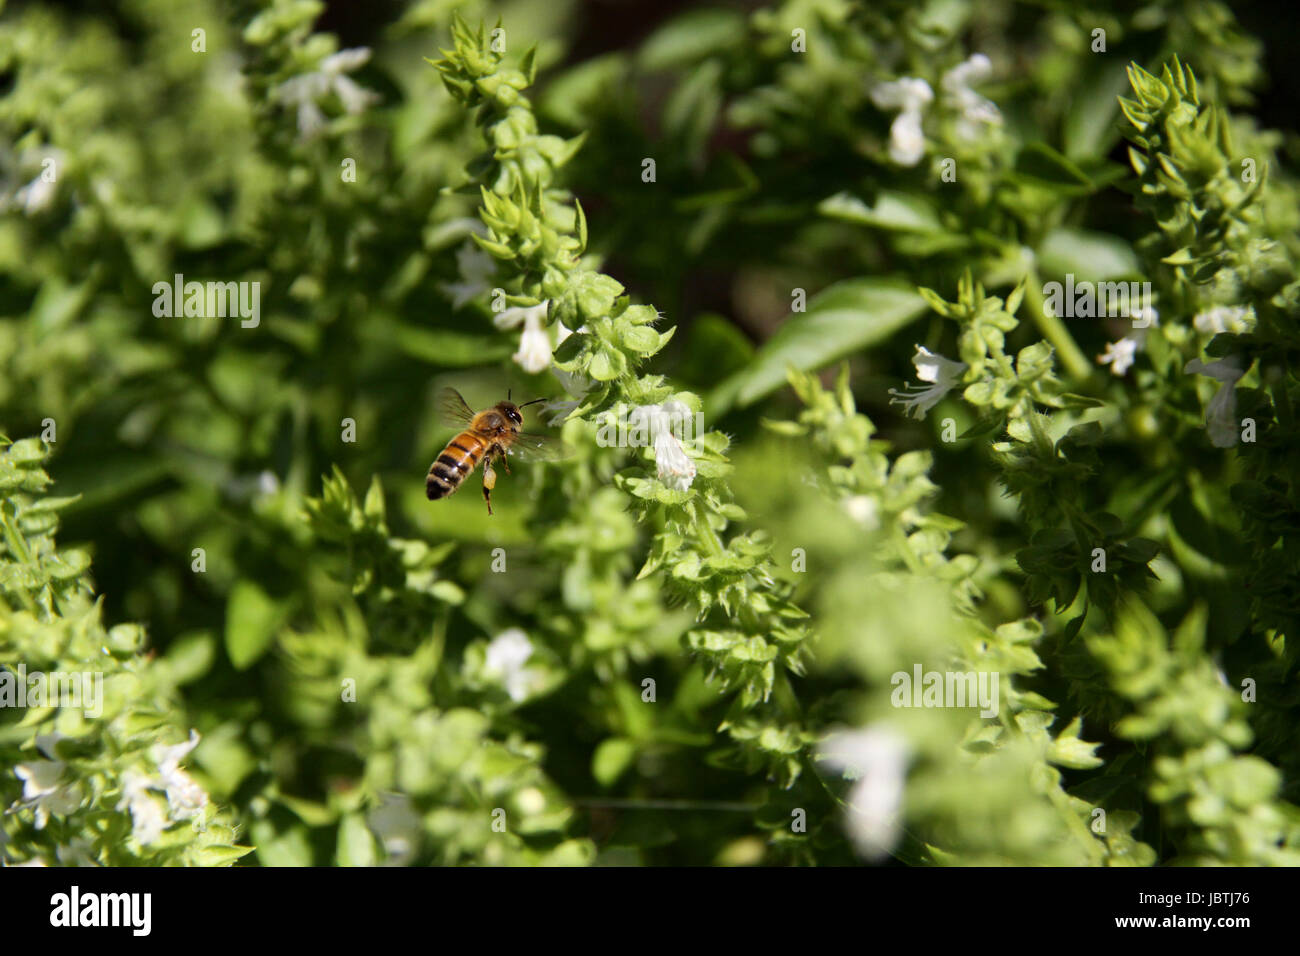 Macro (close up) of bee flying around white basil flowers taken with a high shutter speed - Stock Image